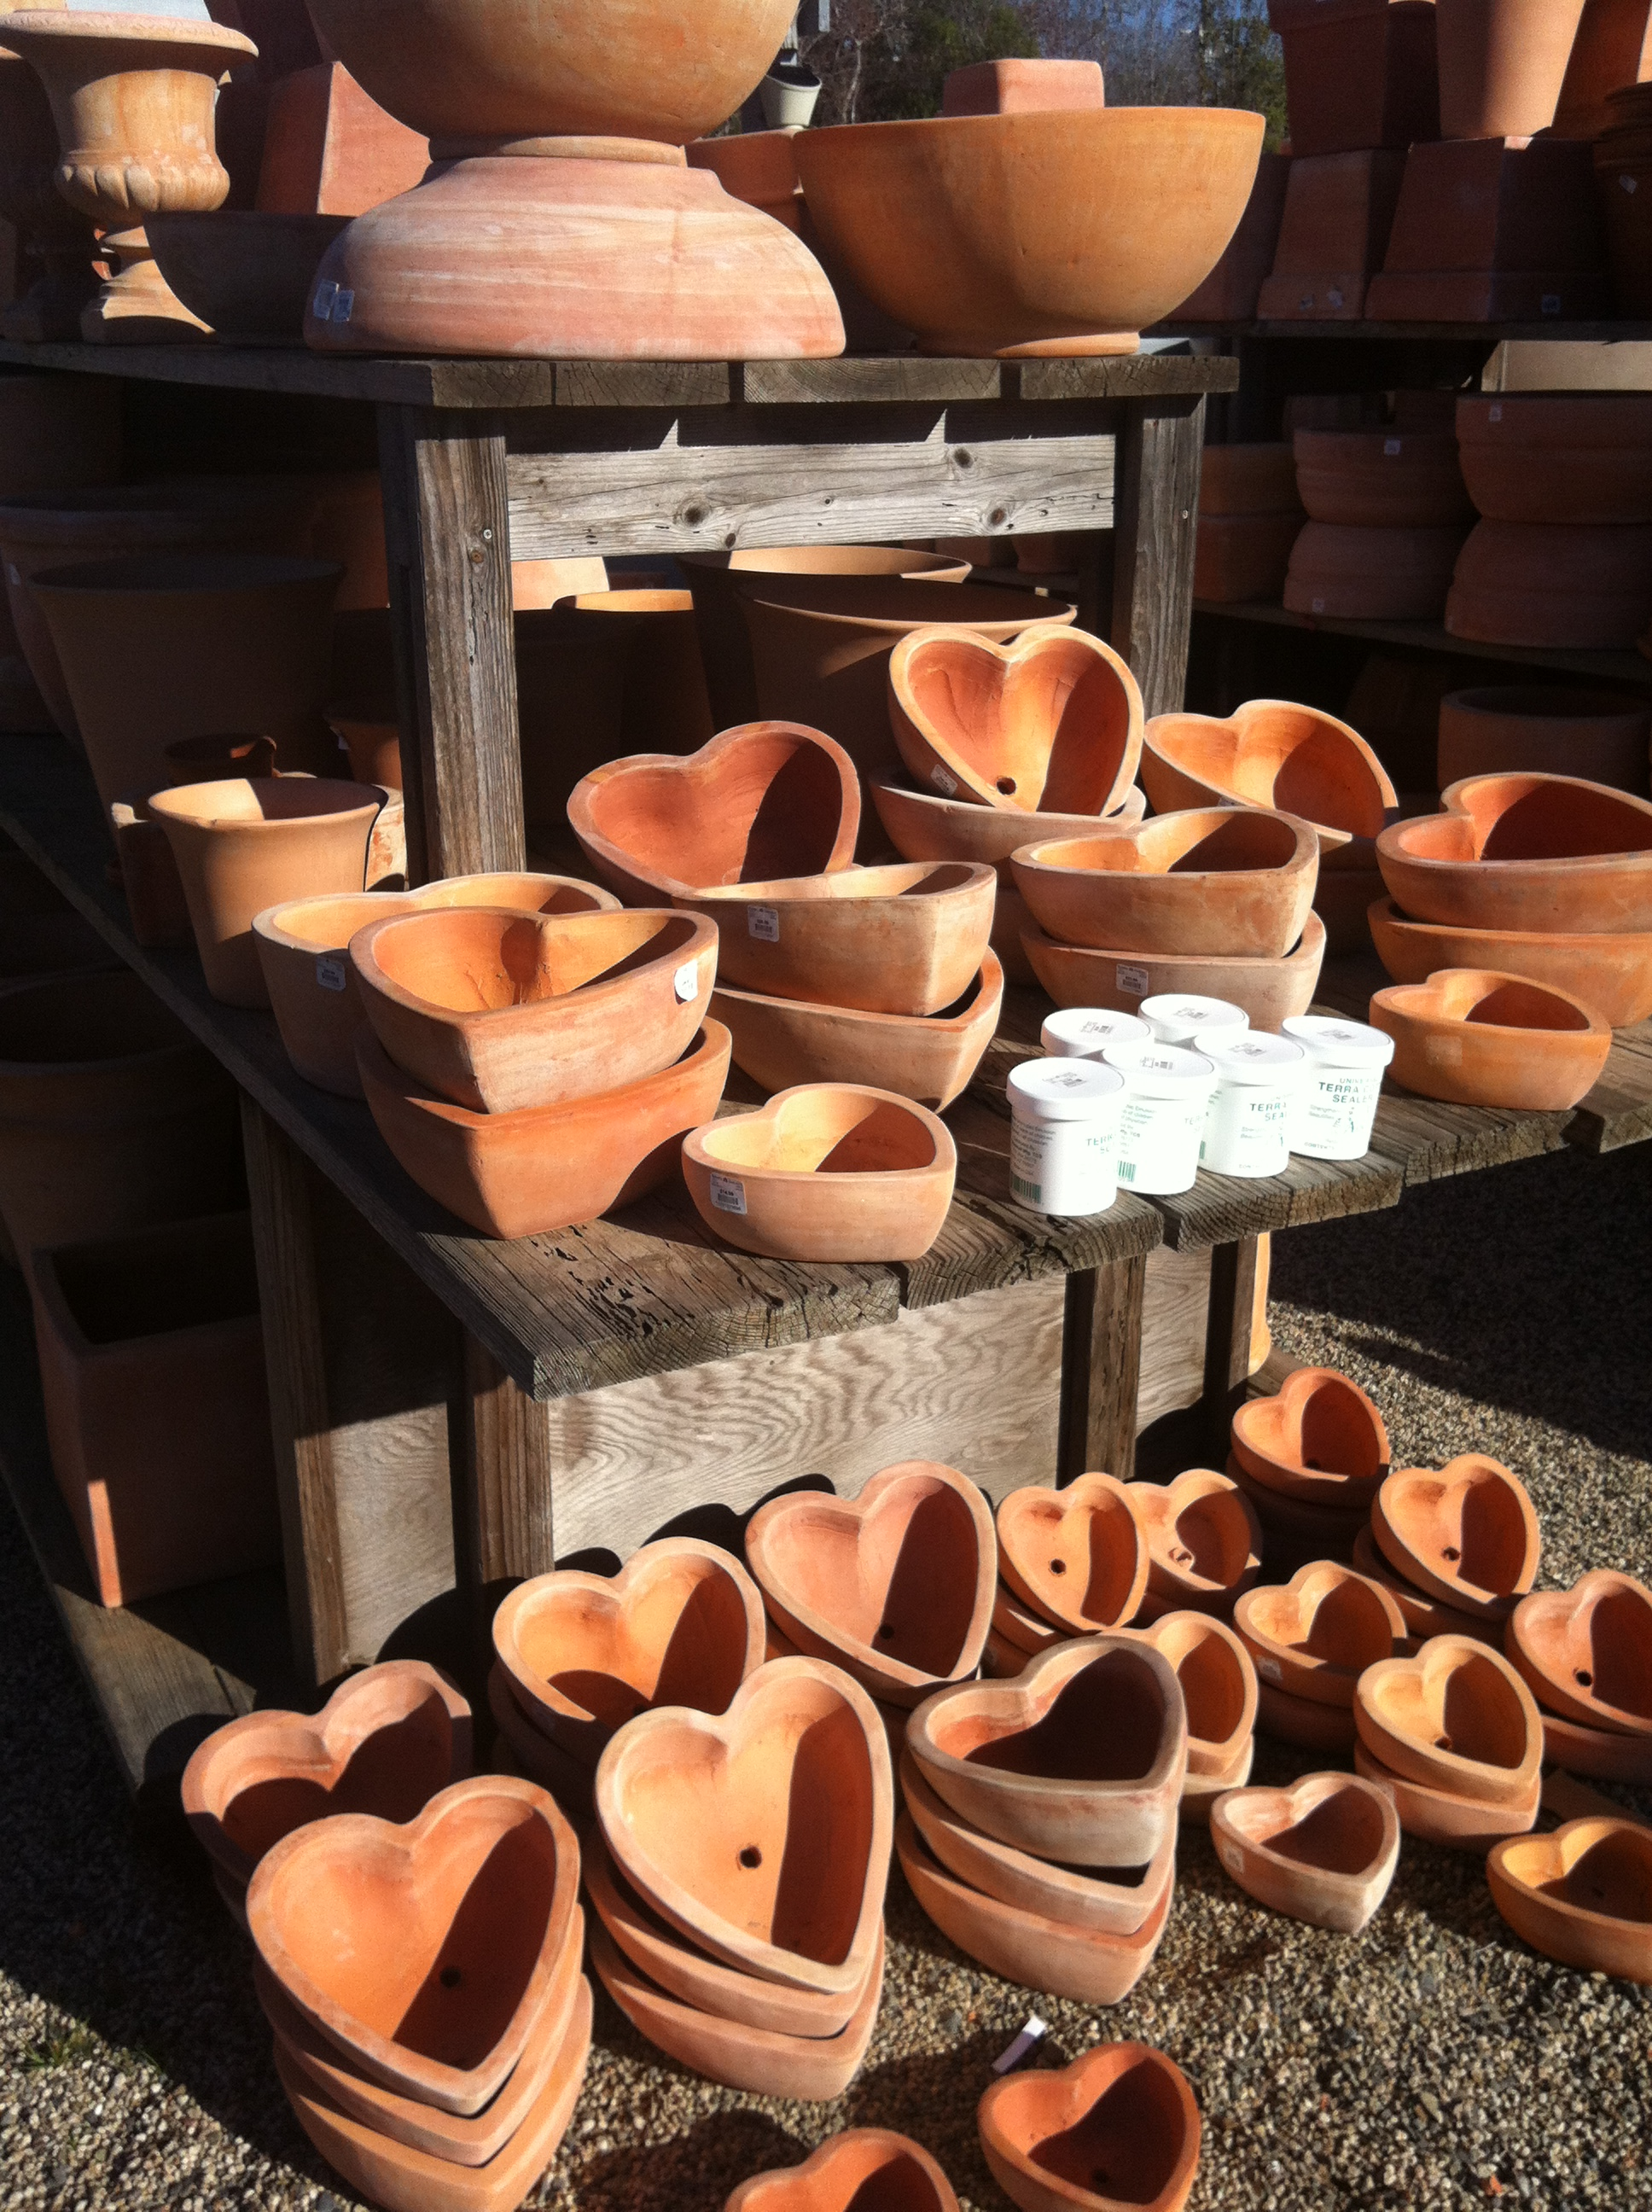 Pots for sale at Rogers Gardens